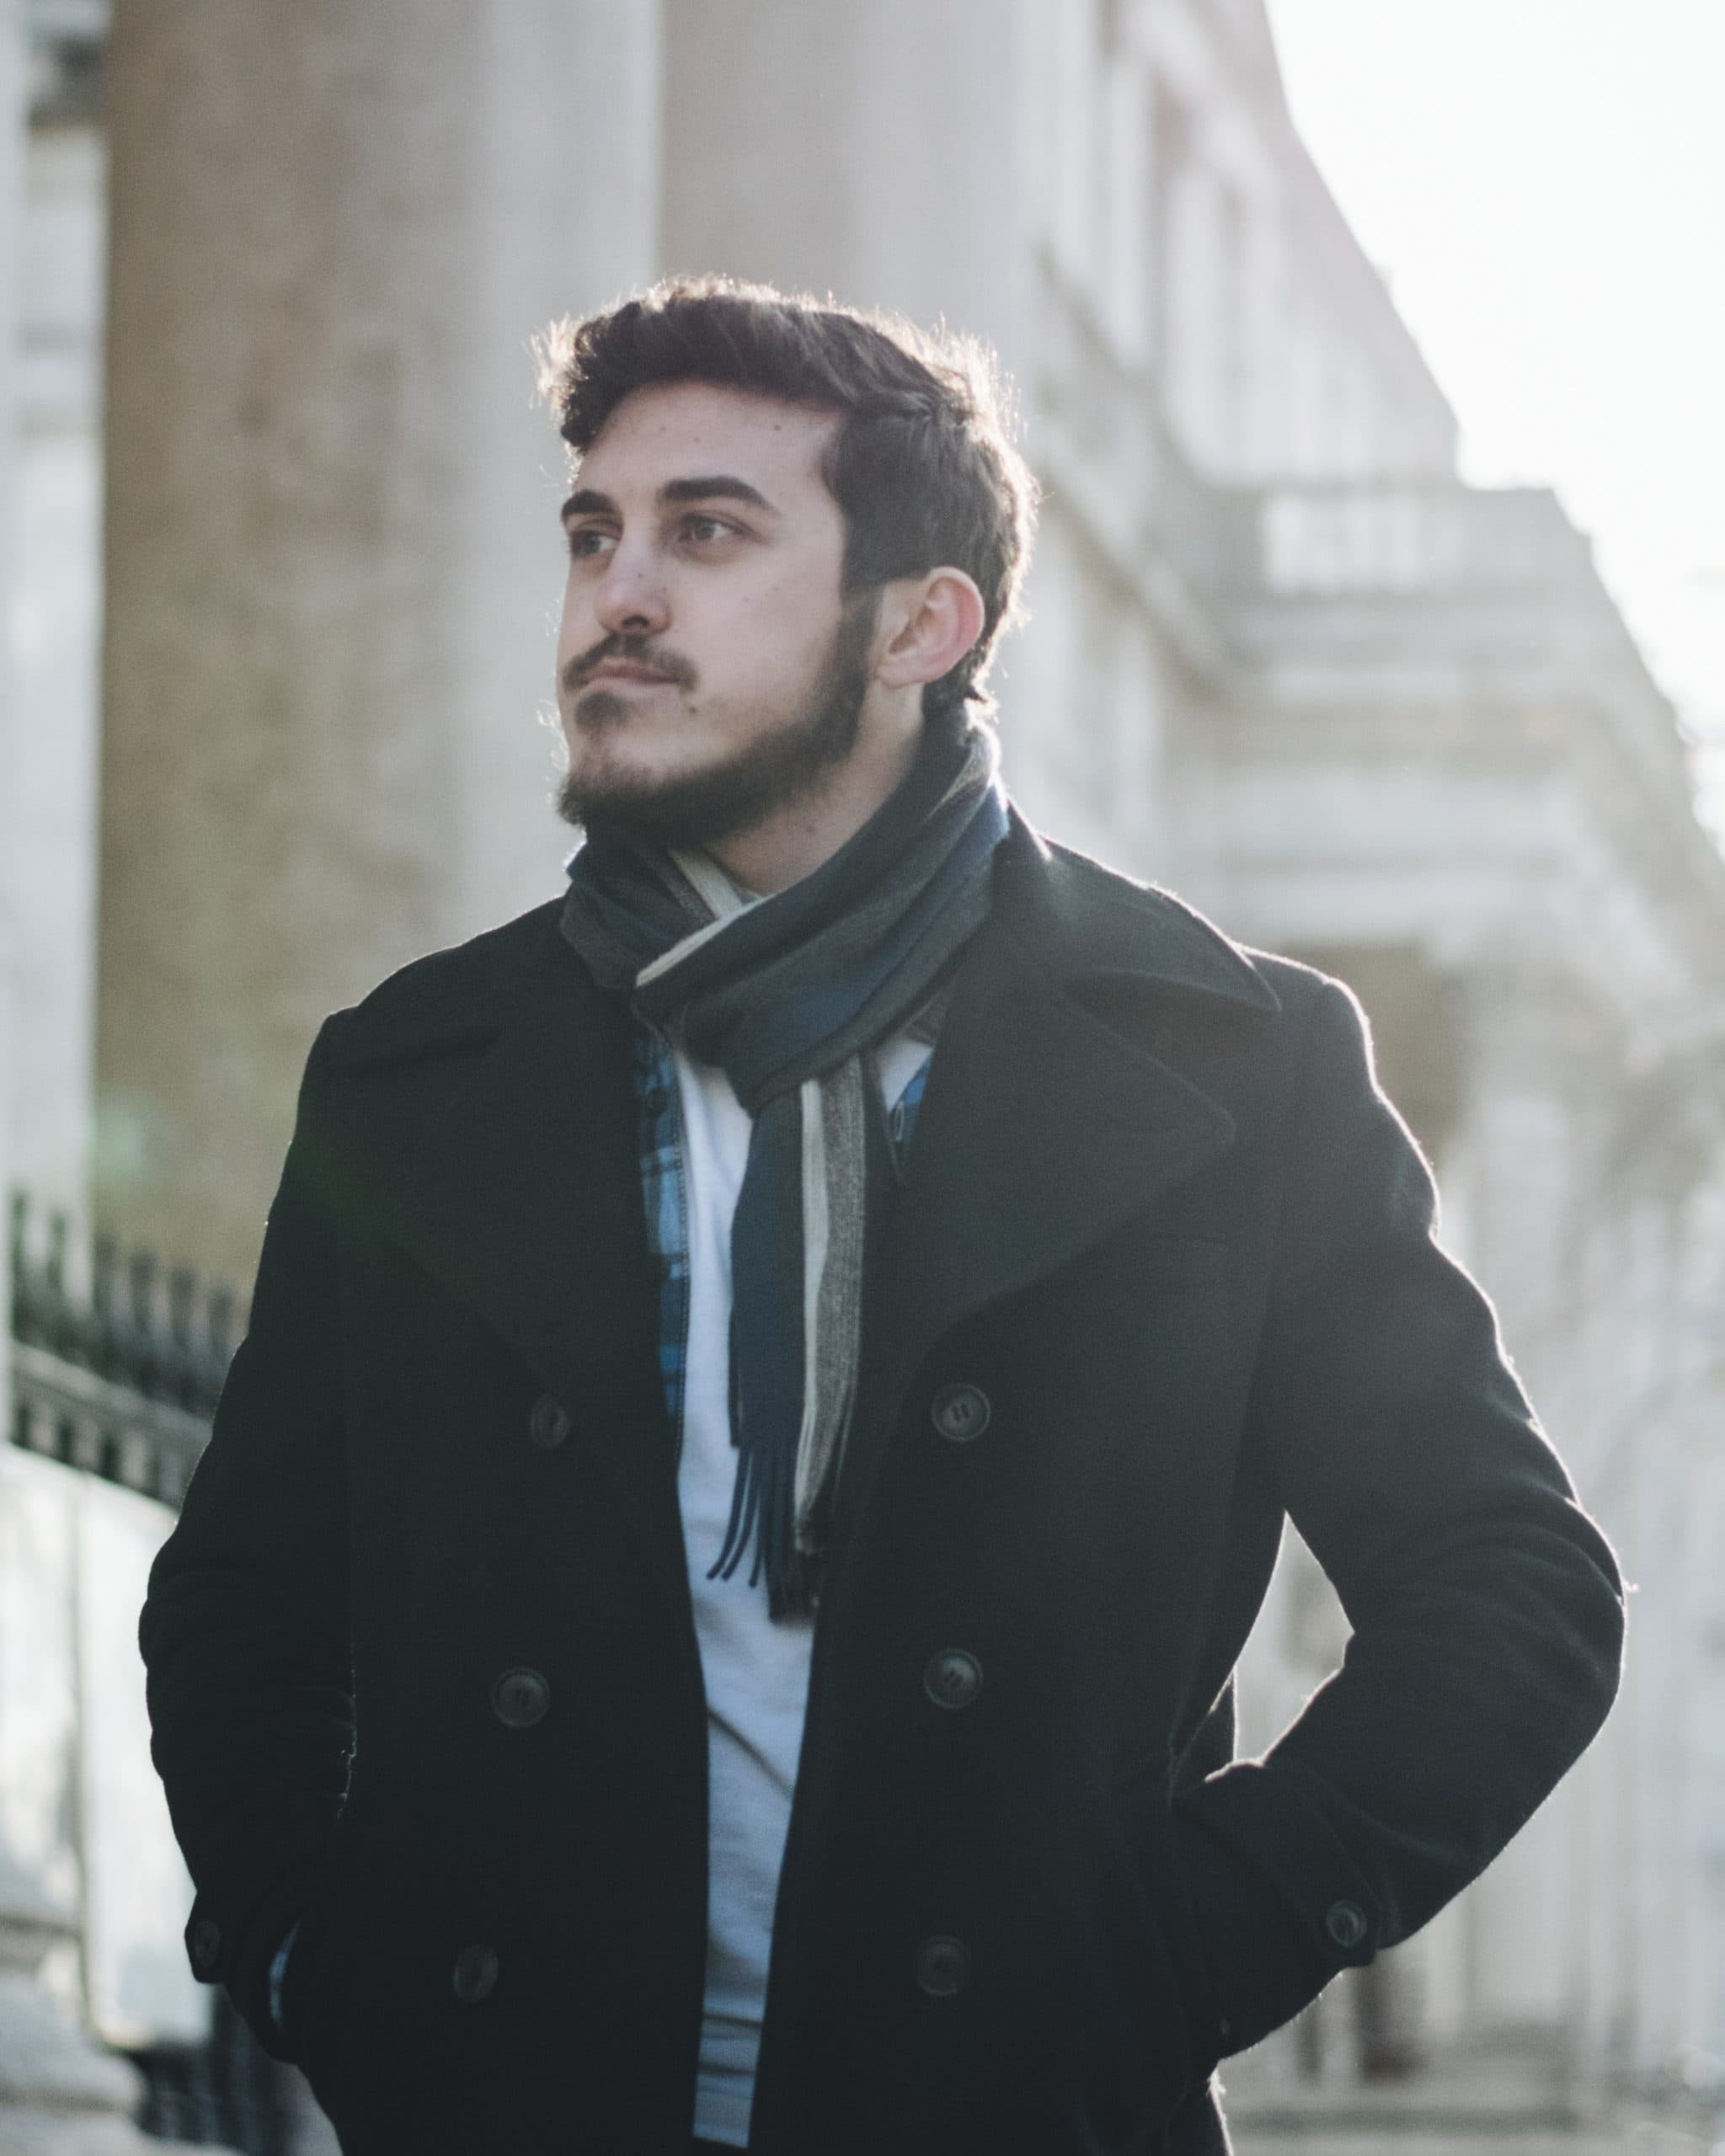 a man with a beard wearing a cost and scarf